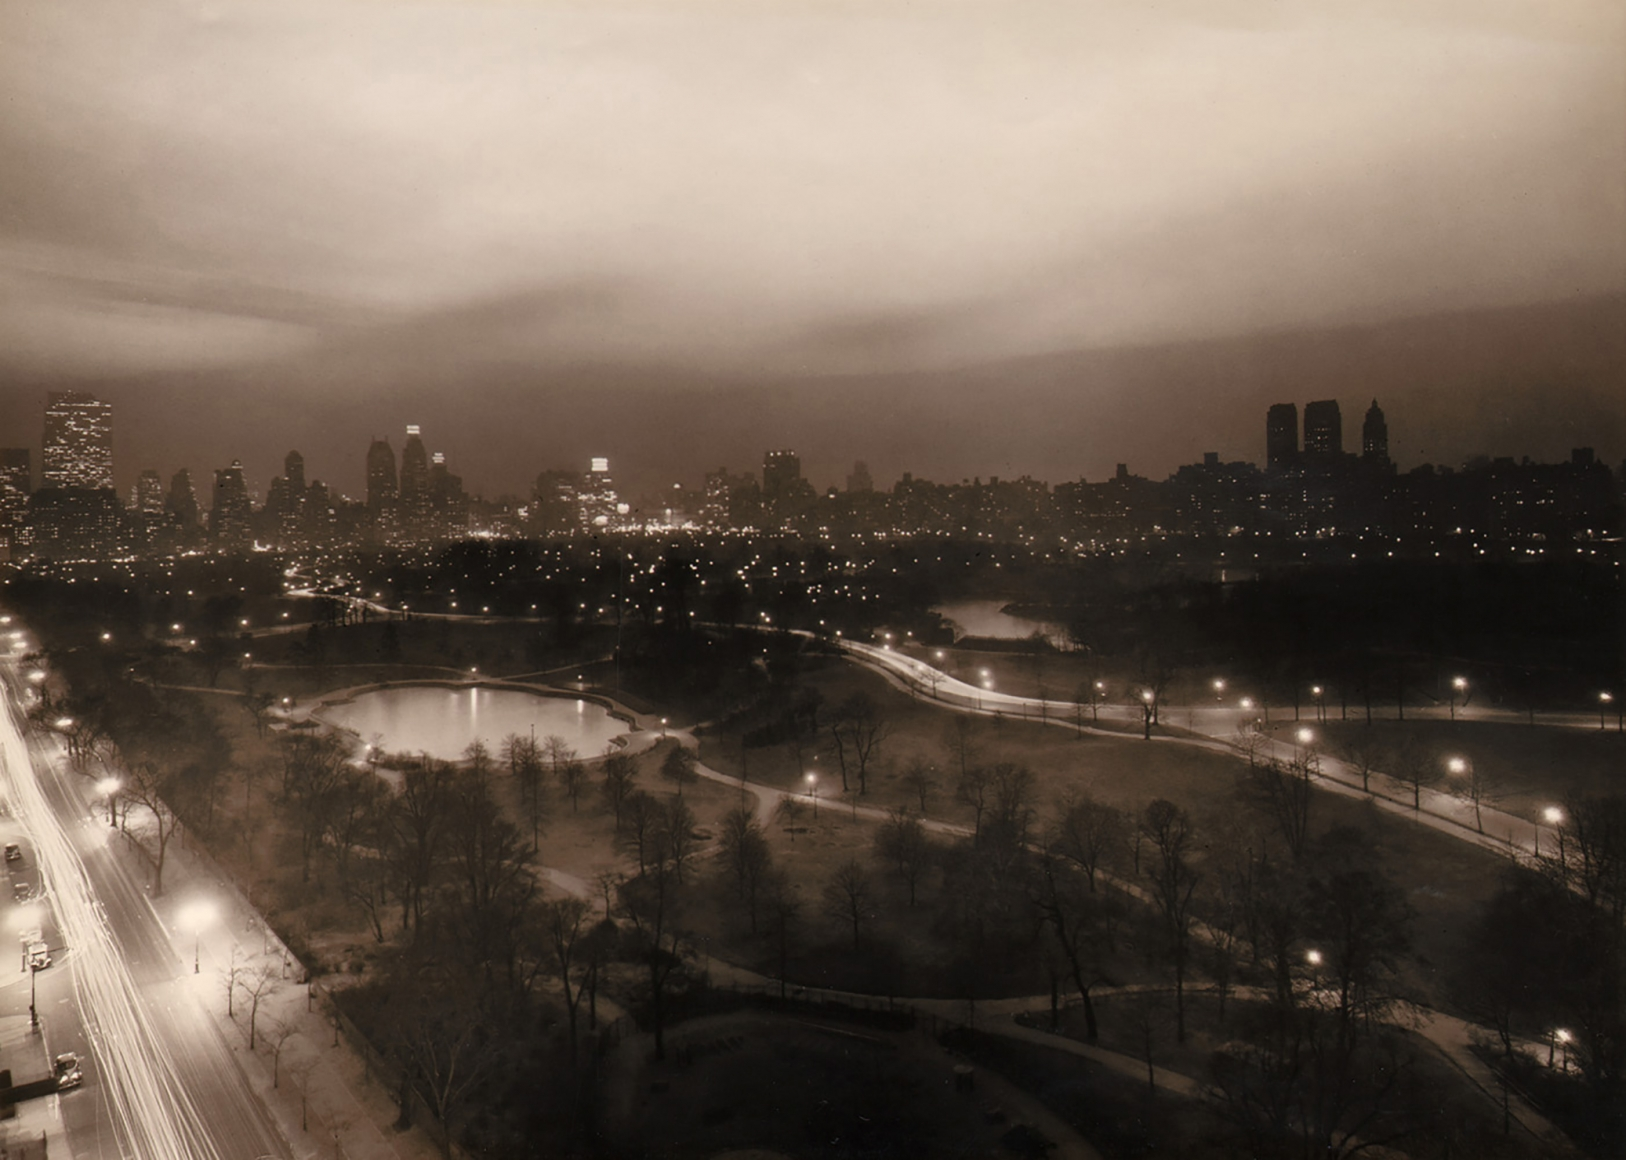 Paul J. Woolf, Central Park Looking South, c. 1936. Night time cityscape with the park filling the lower half of the frame, a street running up the lower left. Tall buildings across the center of the frame and an overcast sky above.